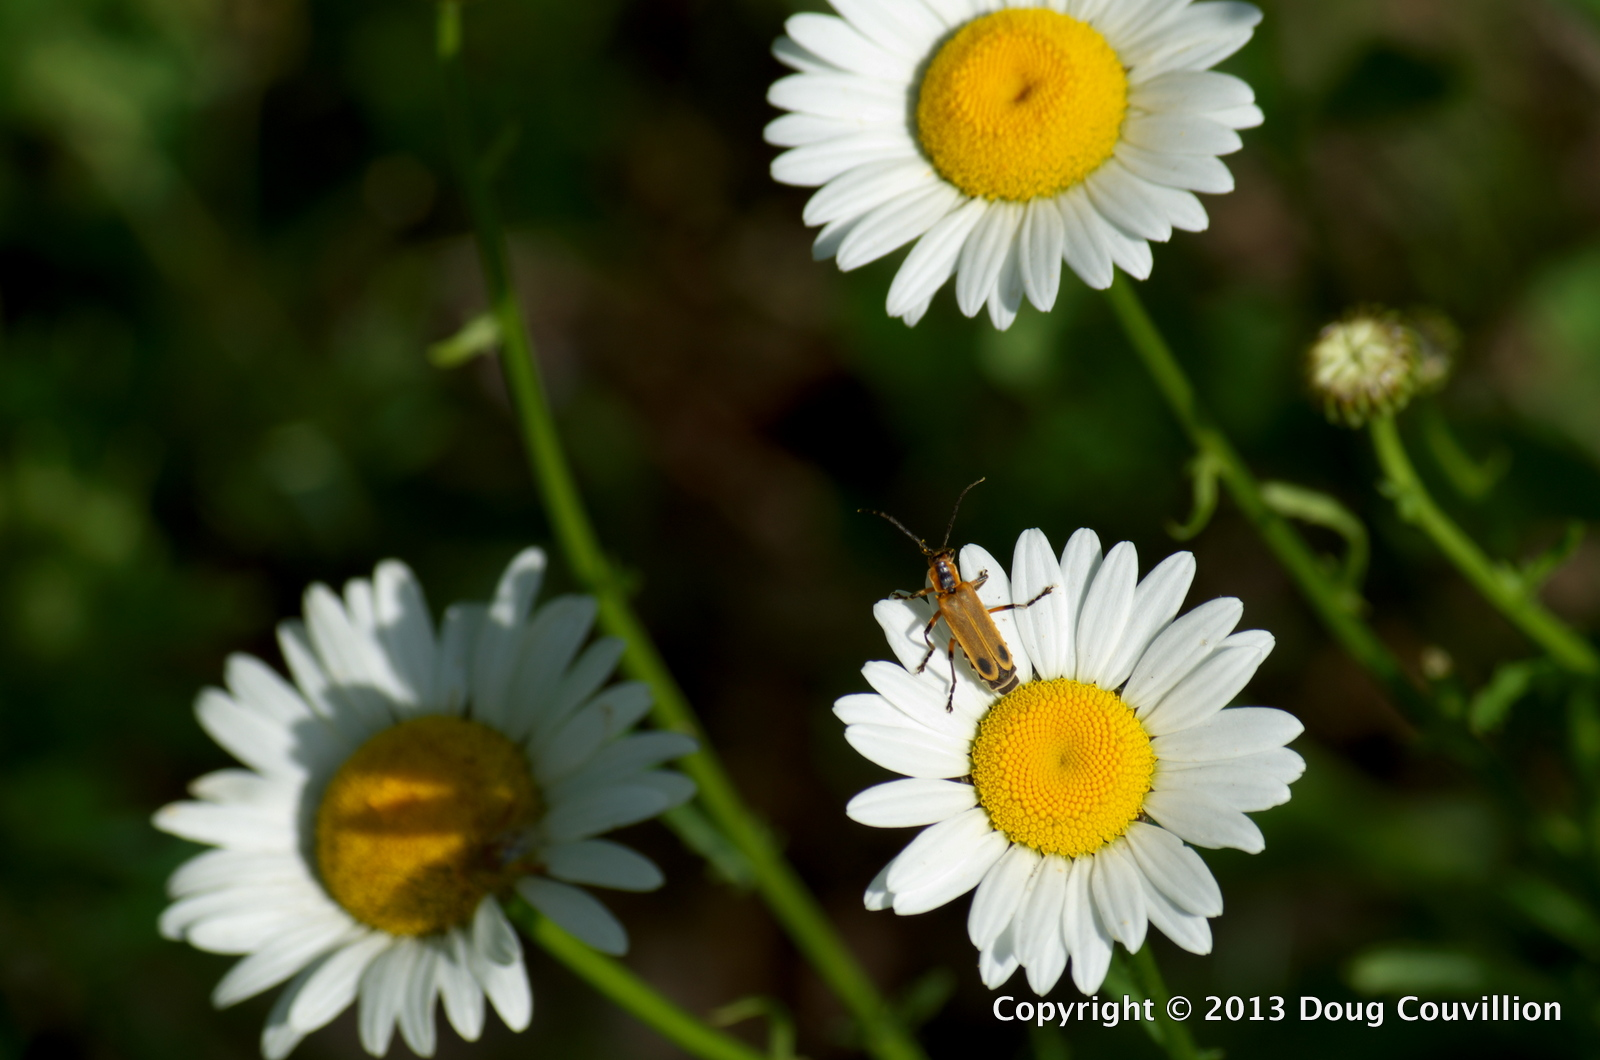 photograph of a beetle on a daisy flower